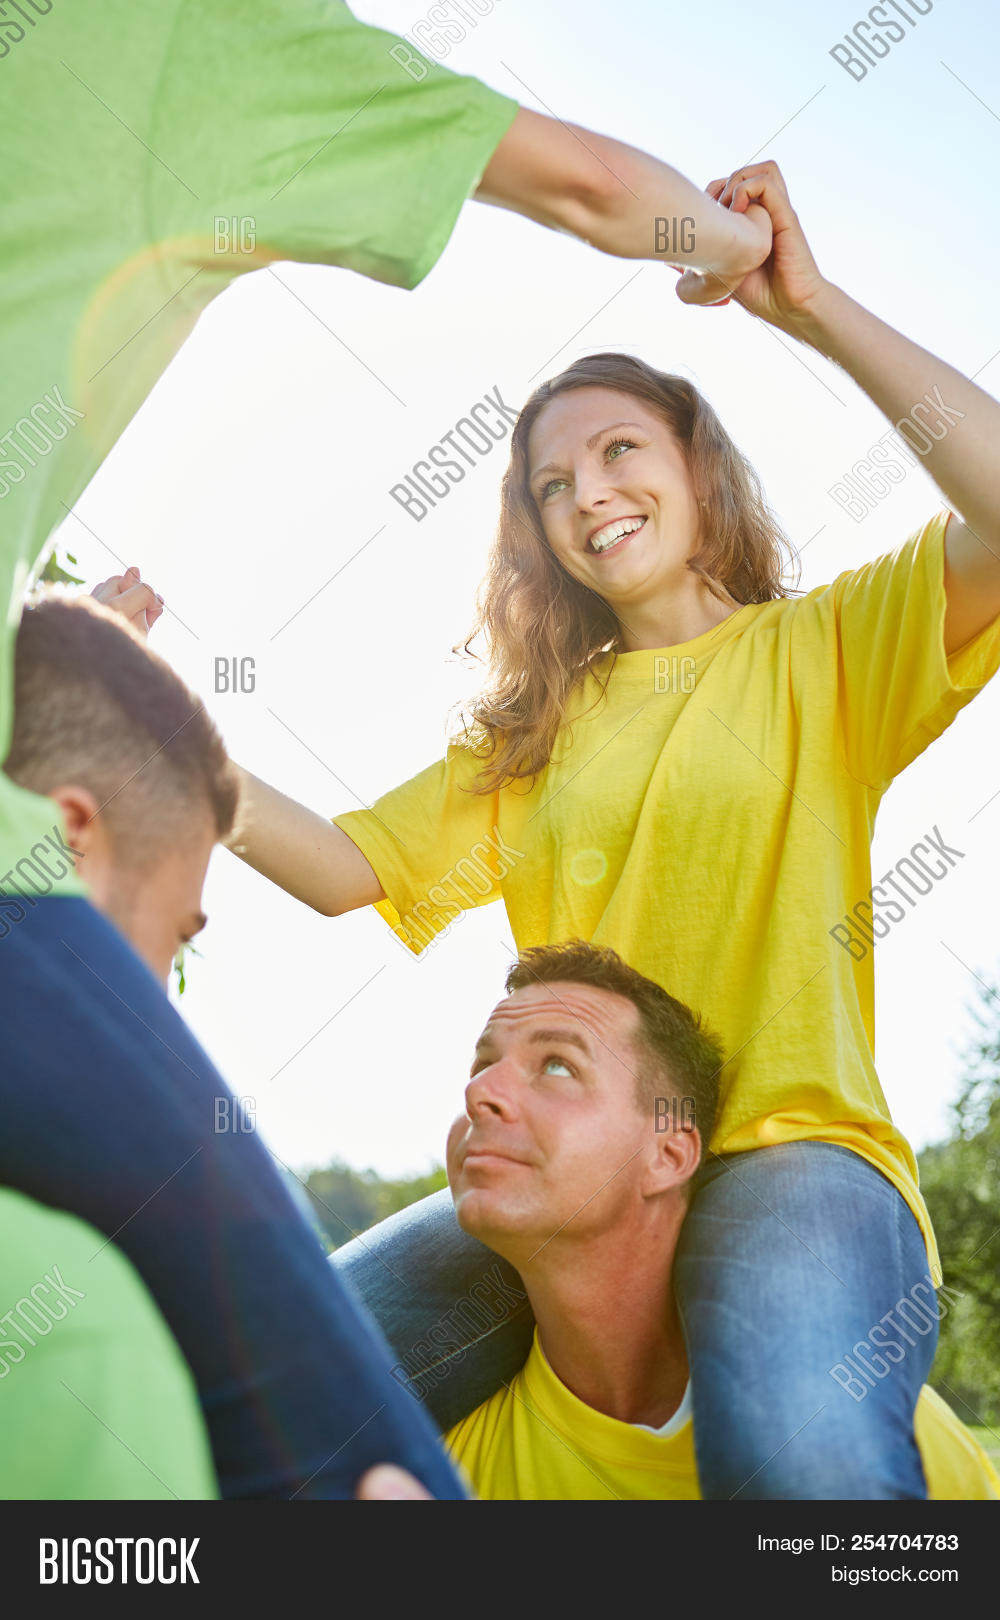 Young Cheerful Woman Image & Photo (Free Trial) | Bigstock